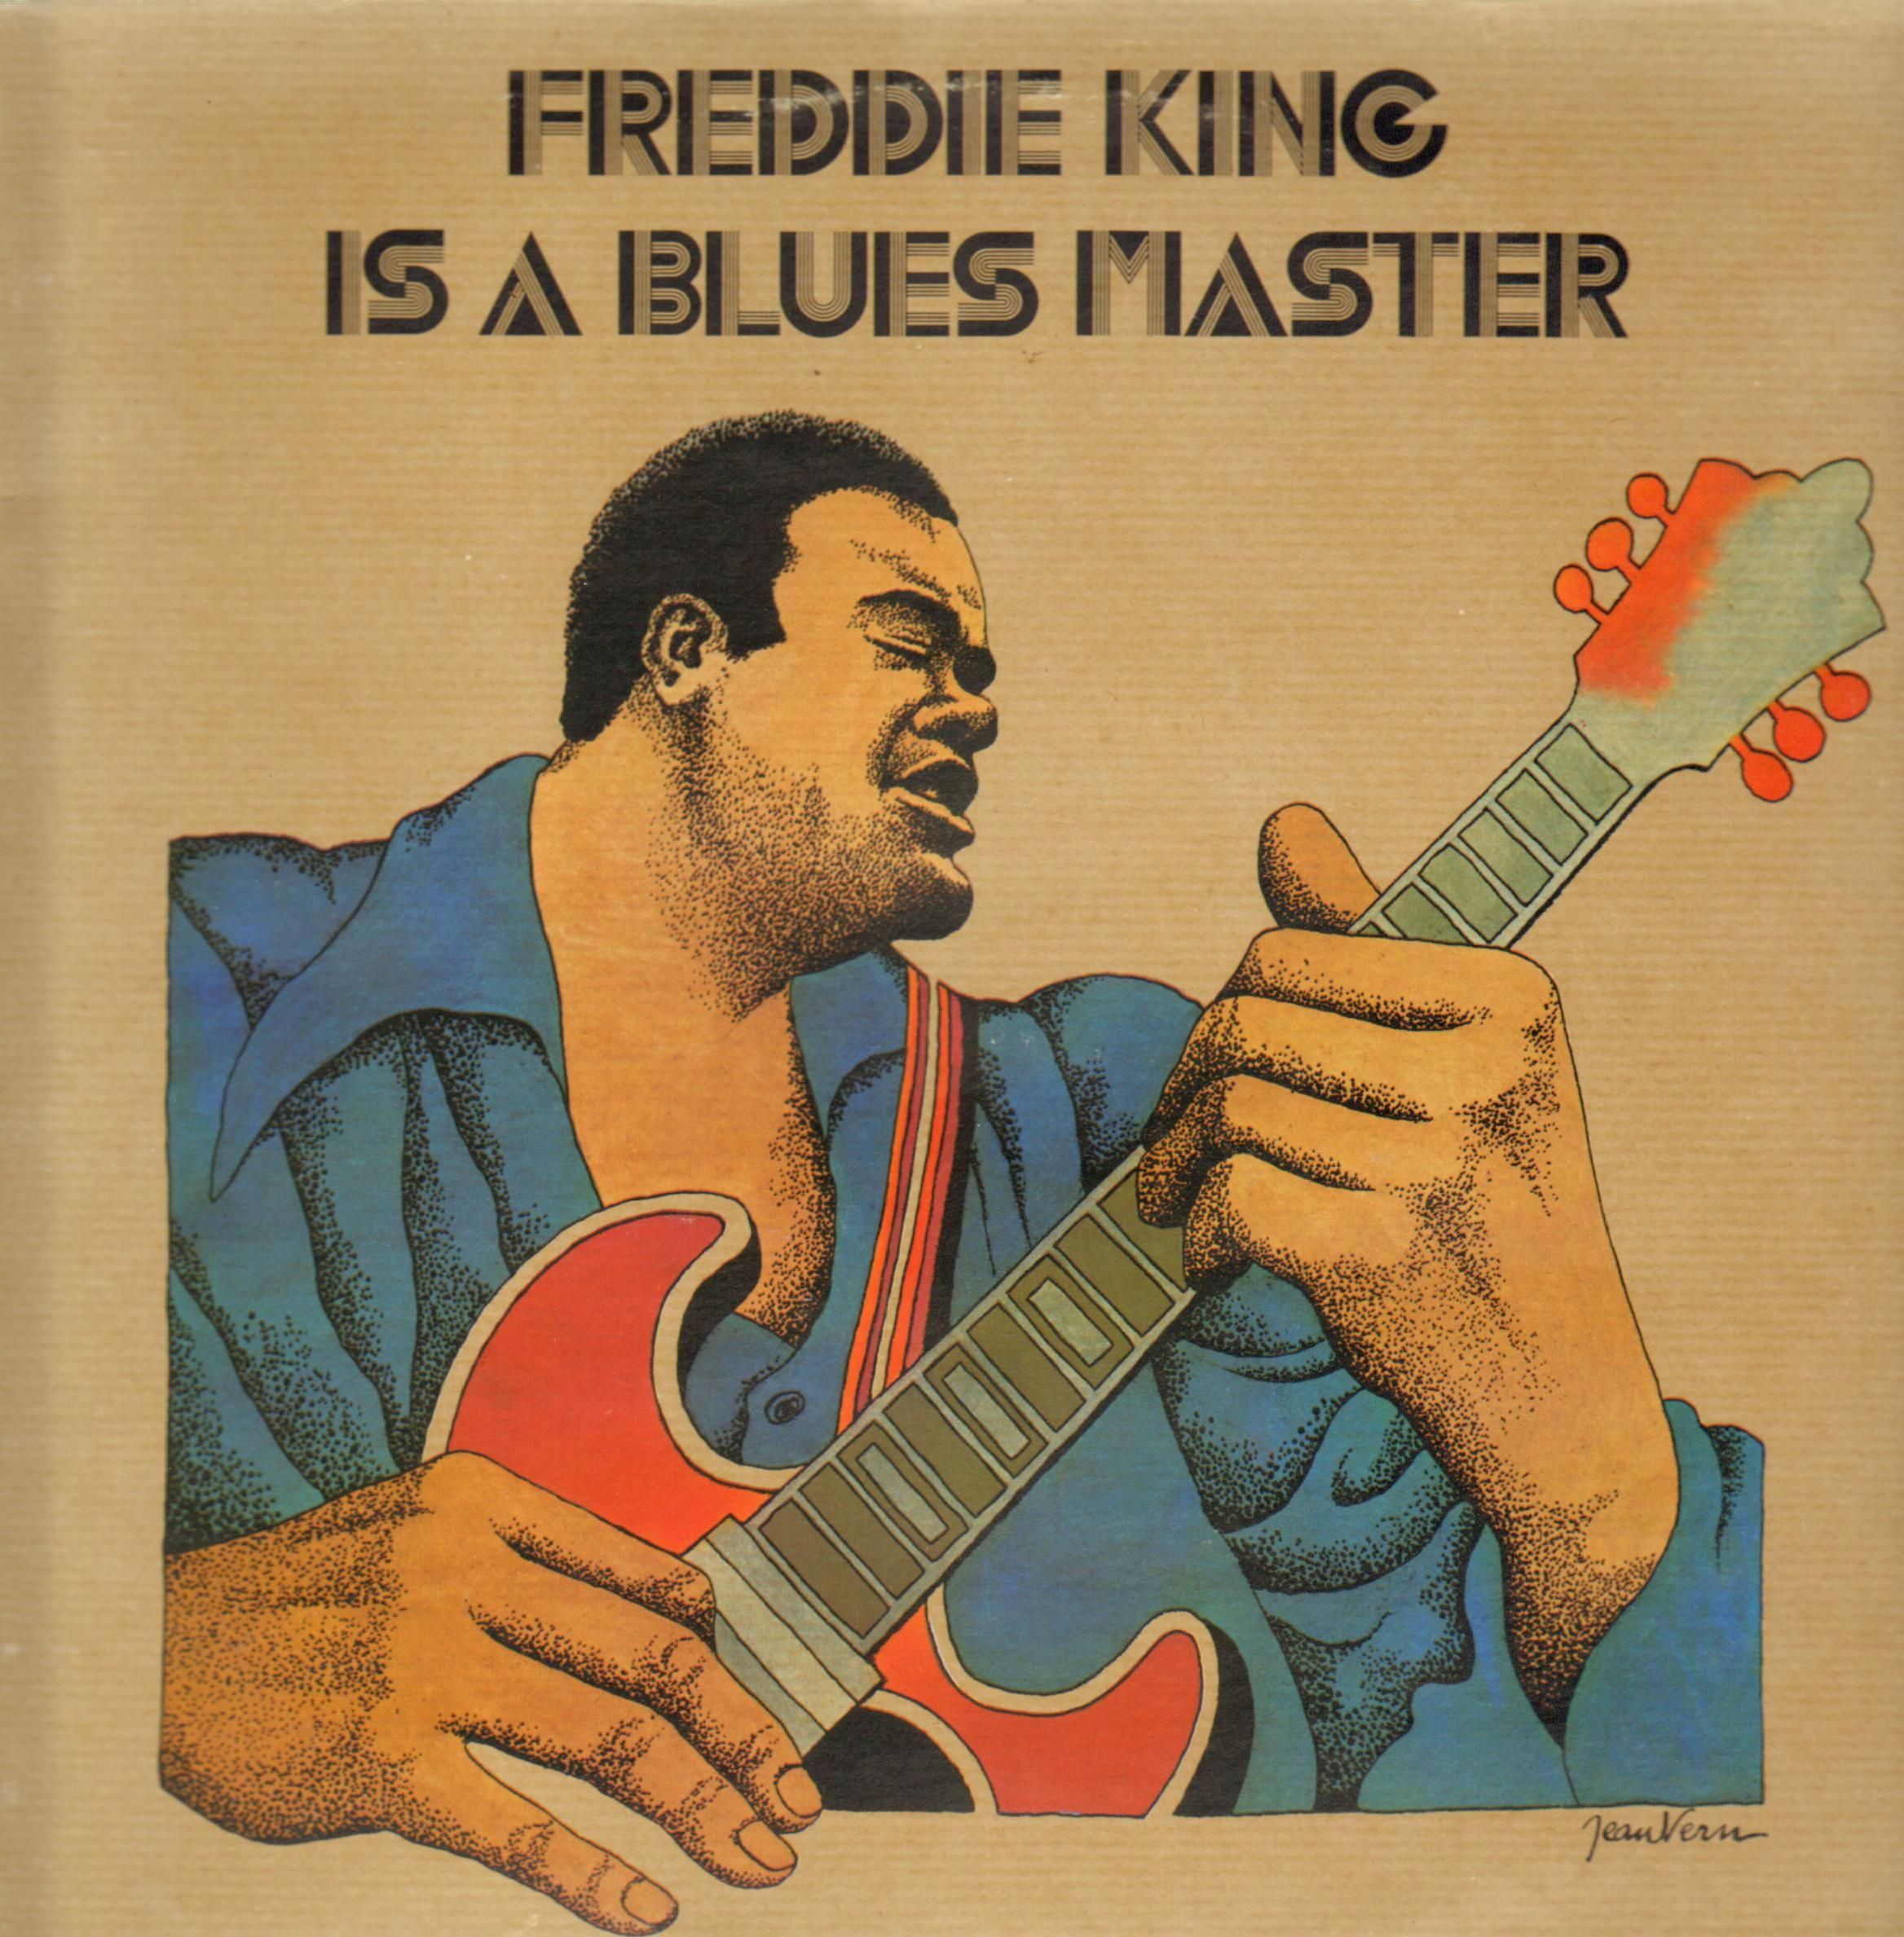 Freddie King Is A Blues Master Blues Music Poster Classic Album Covers Rock Album Covers